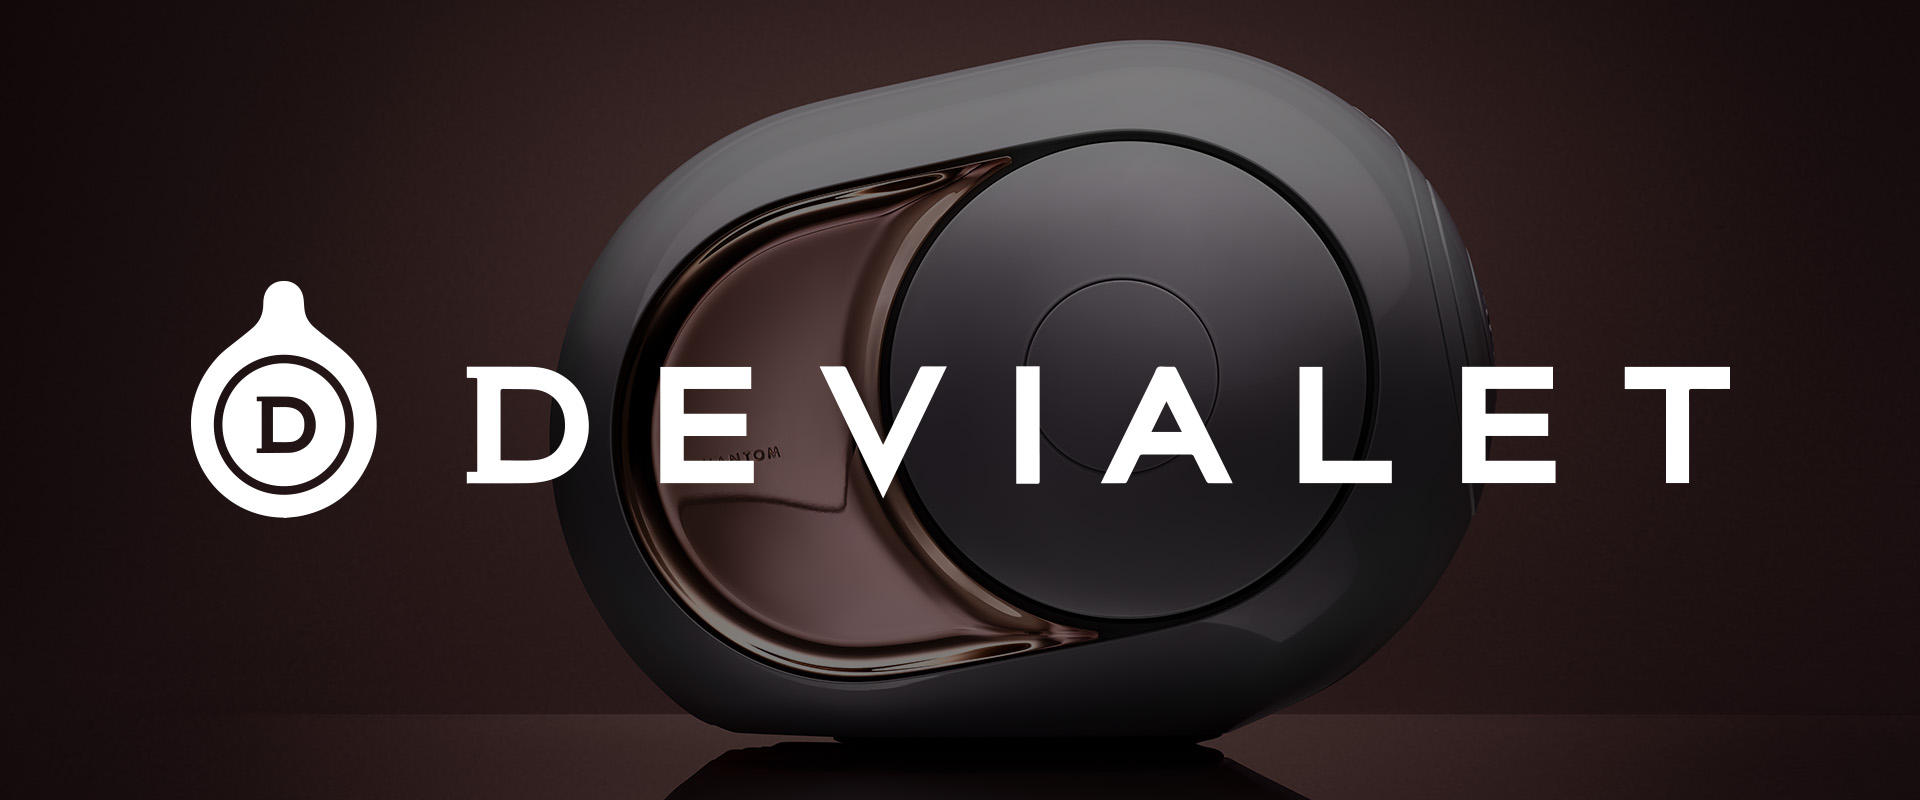 Devialet - Chattelin Audio Systems